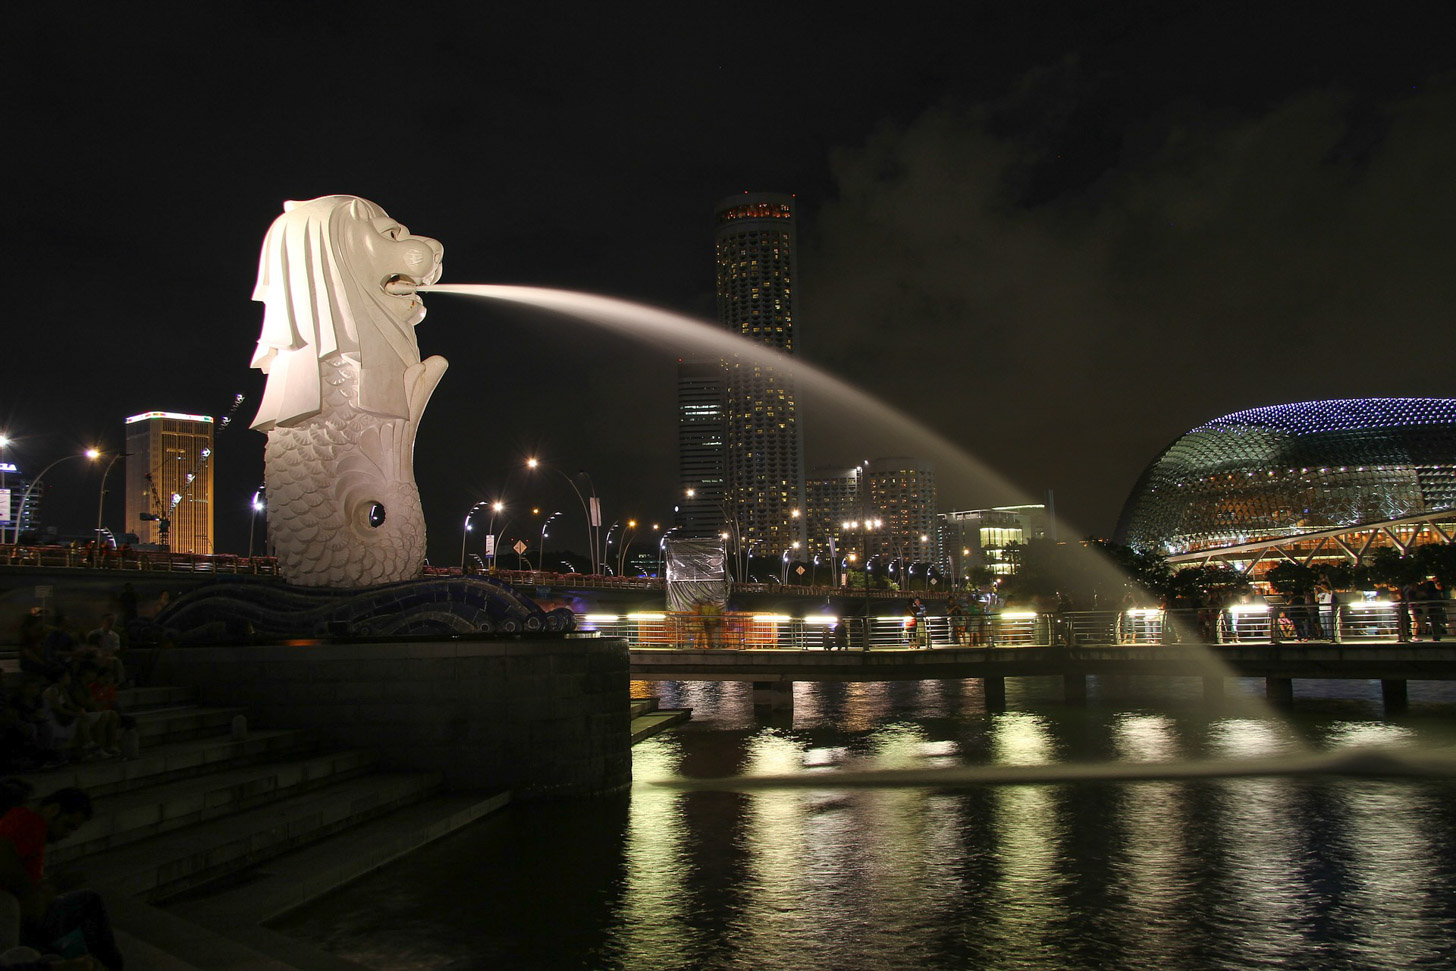 De Merlion in Singapore